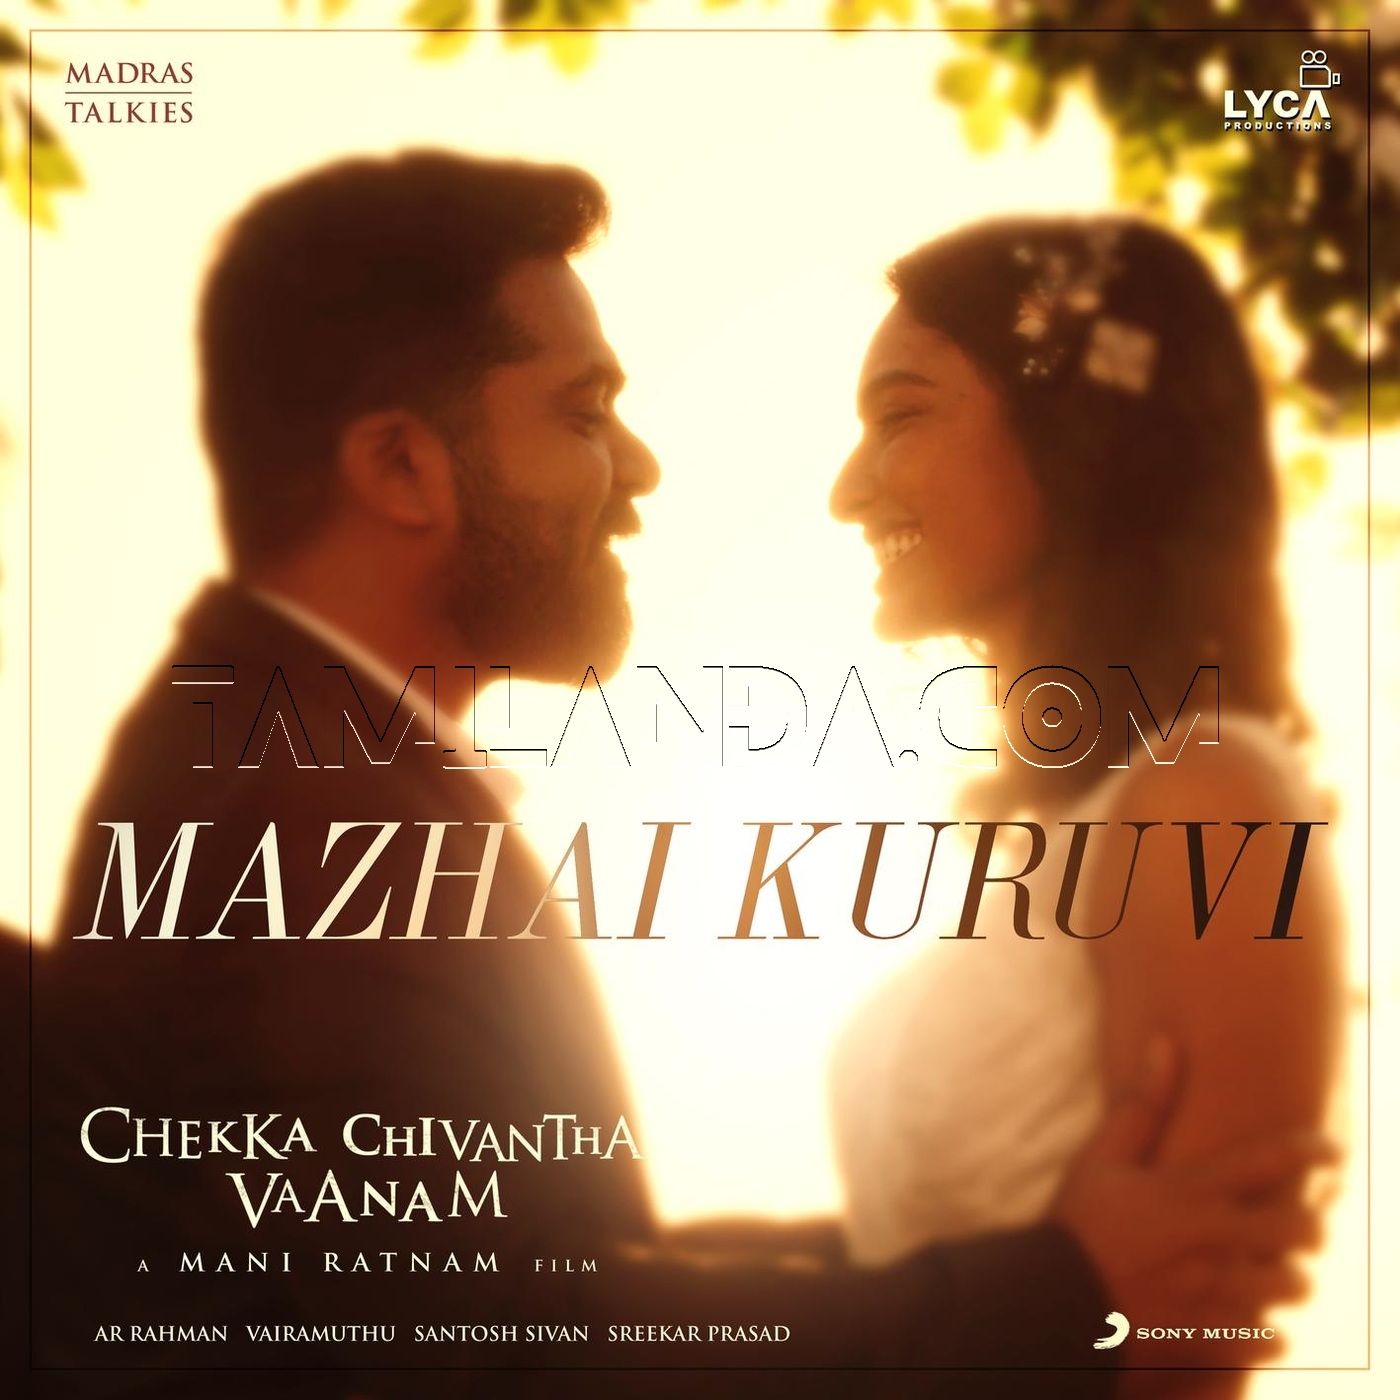 Mazhai Kuruvi (From Chekka Chivantha Vaanam) – Single FLAC Song